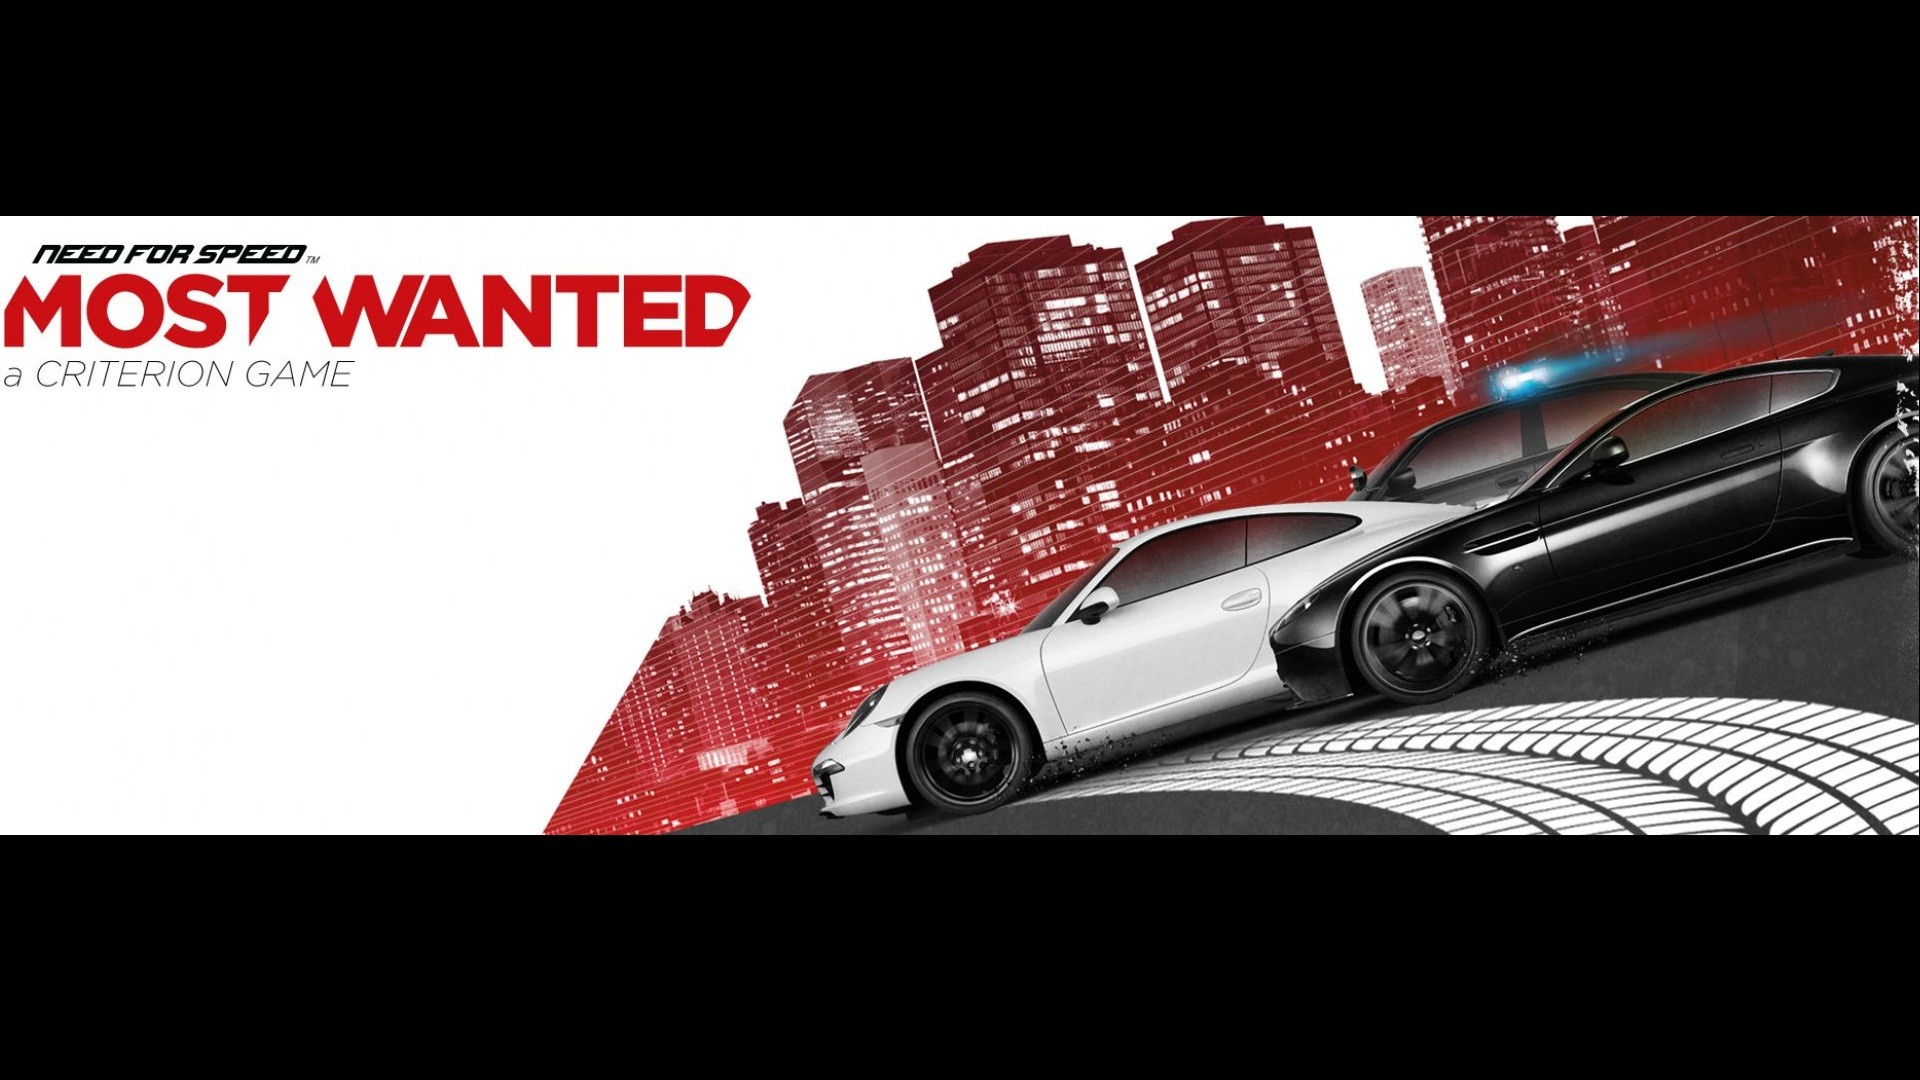 Nfs Most Wanted Wallpaper 77 Images